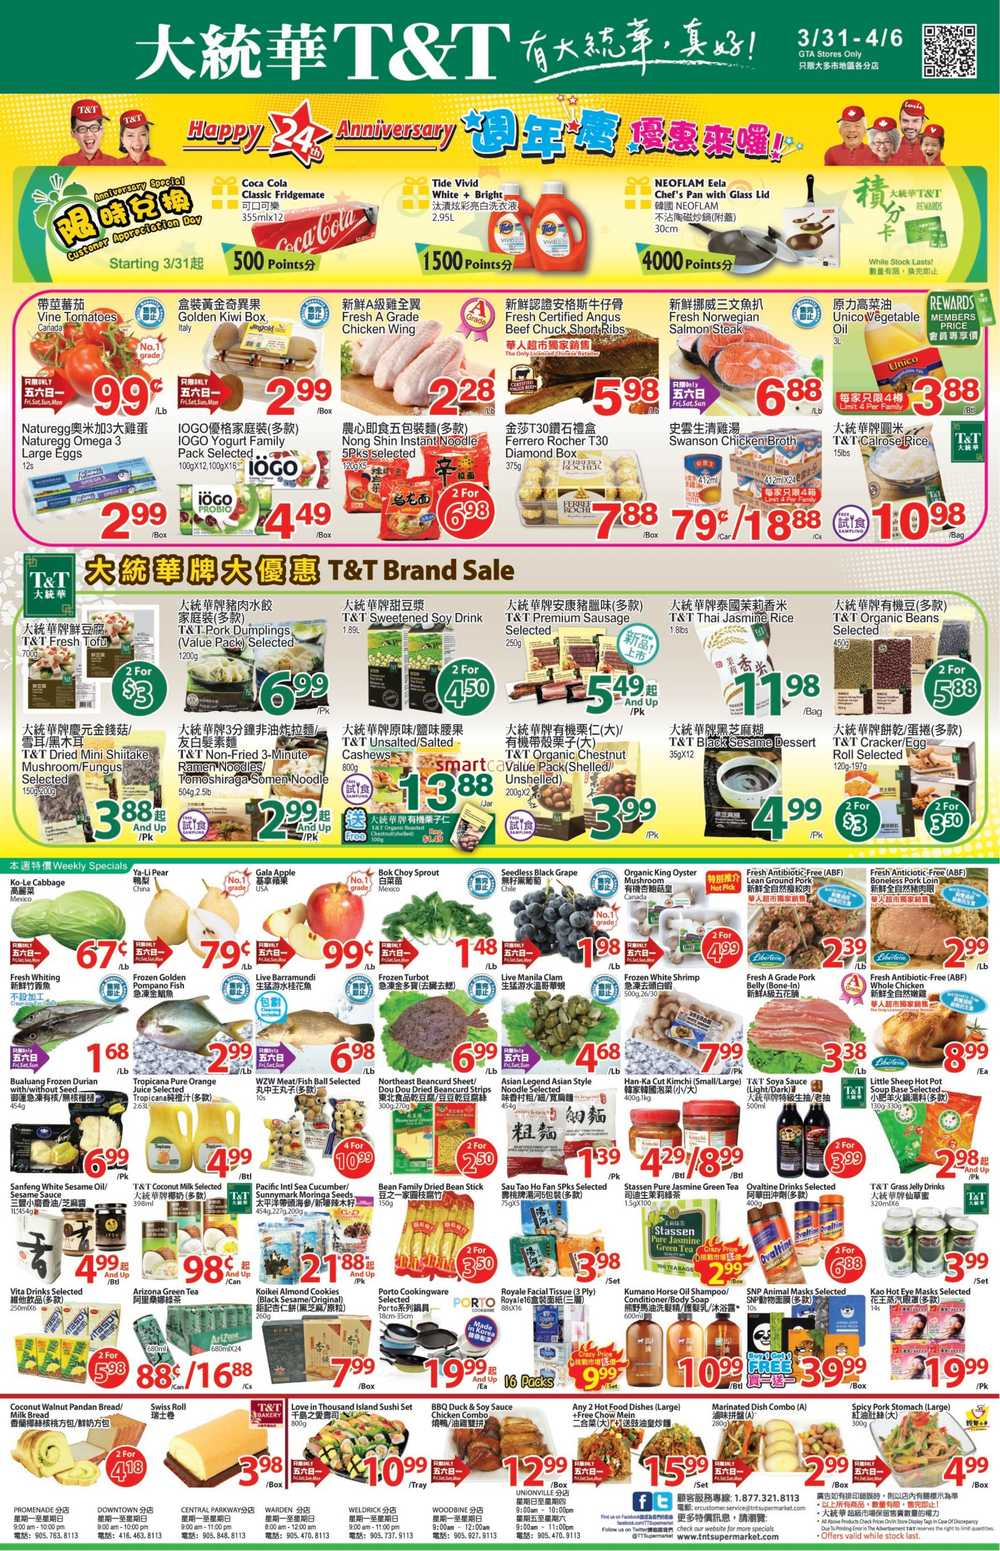 Image Result For Flyers